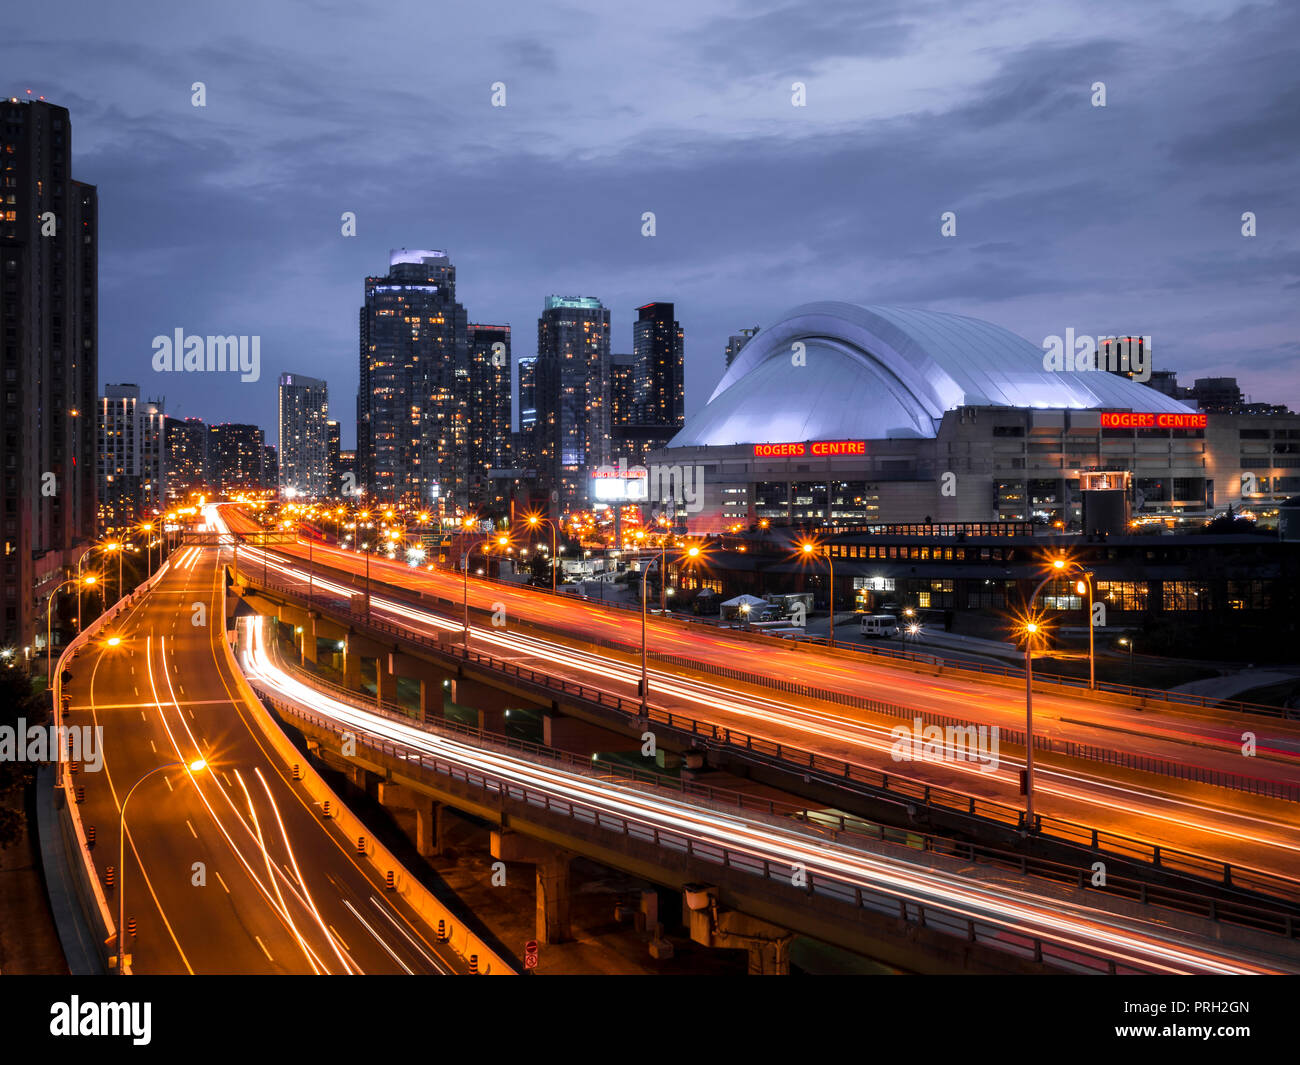 Toronto's Rogers Center dome from Gardiner Expressway with light trains showing movement of traffic on road with buildings in the backdrop - Stock Image